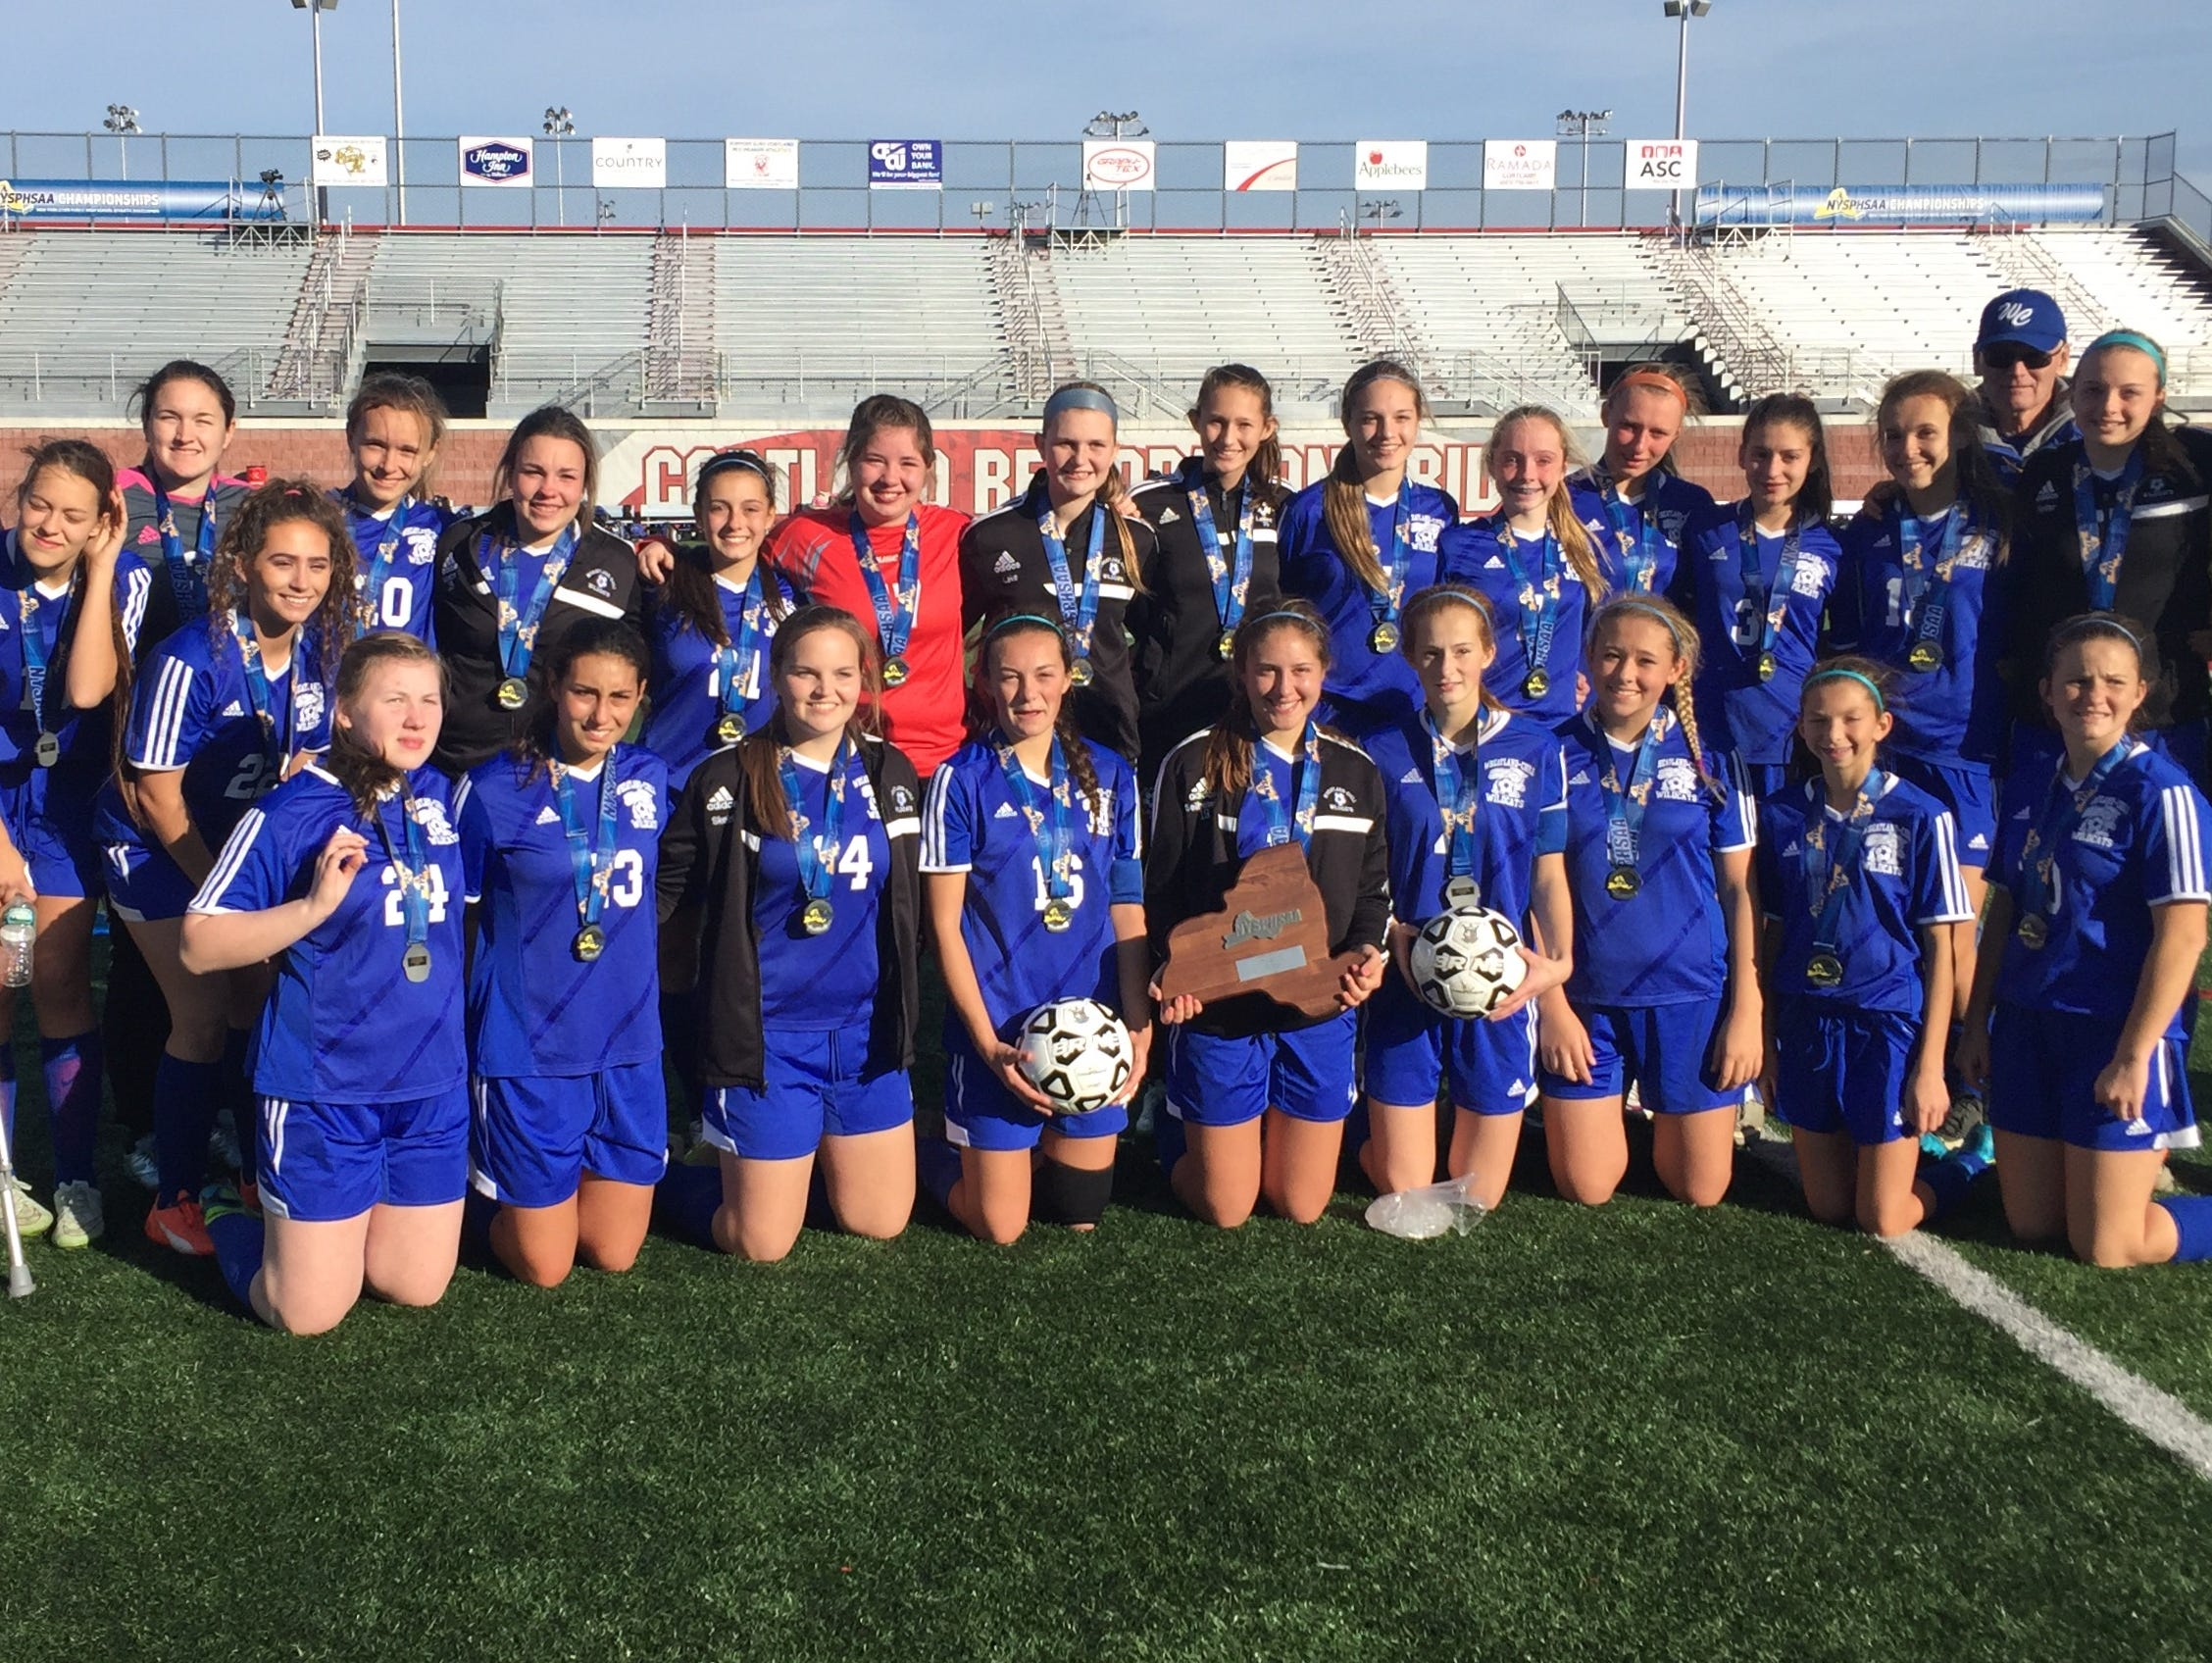 Wheatland-Chili with the runner-up trophy